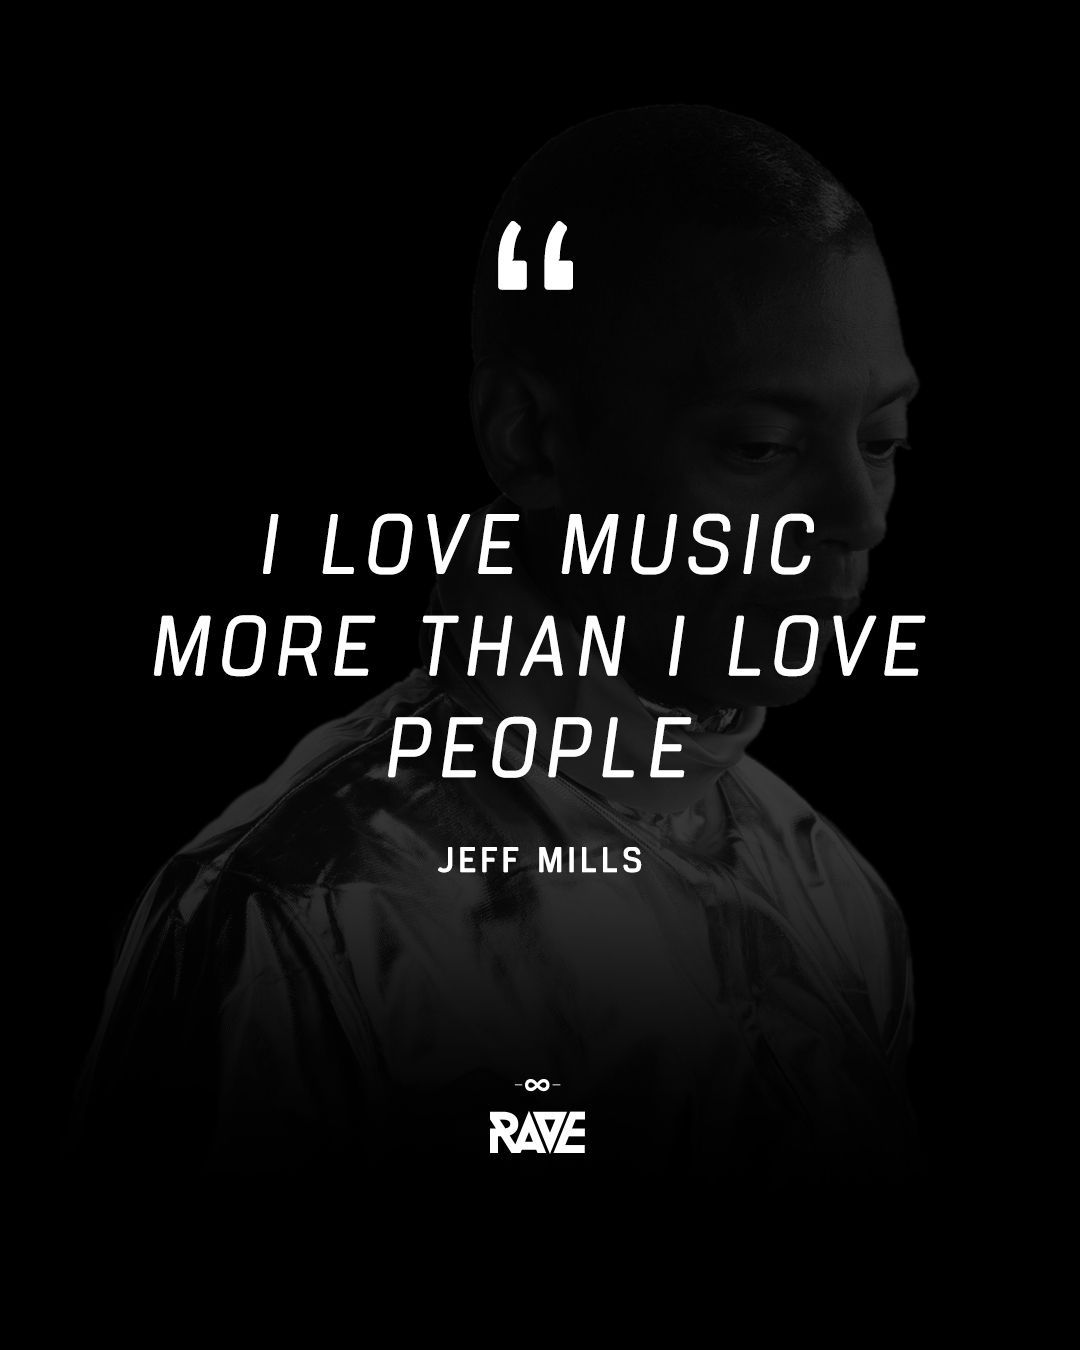 I love music more than I love people - Jeff Mills